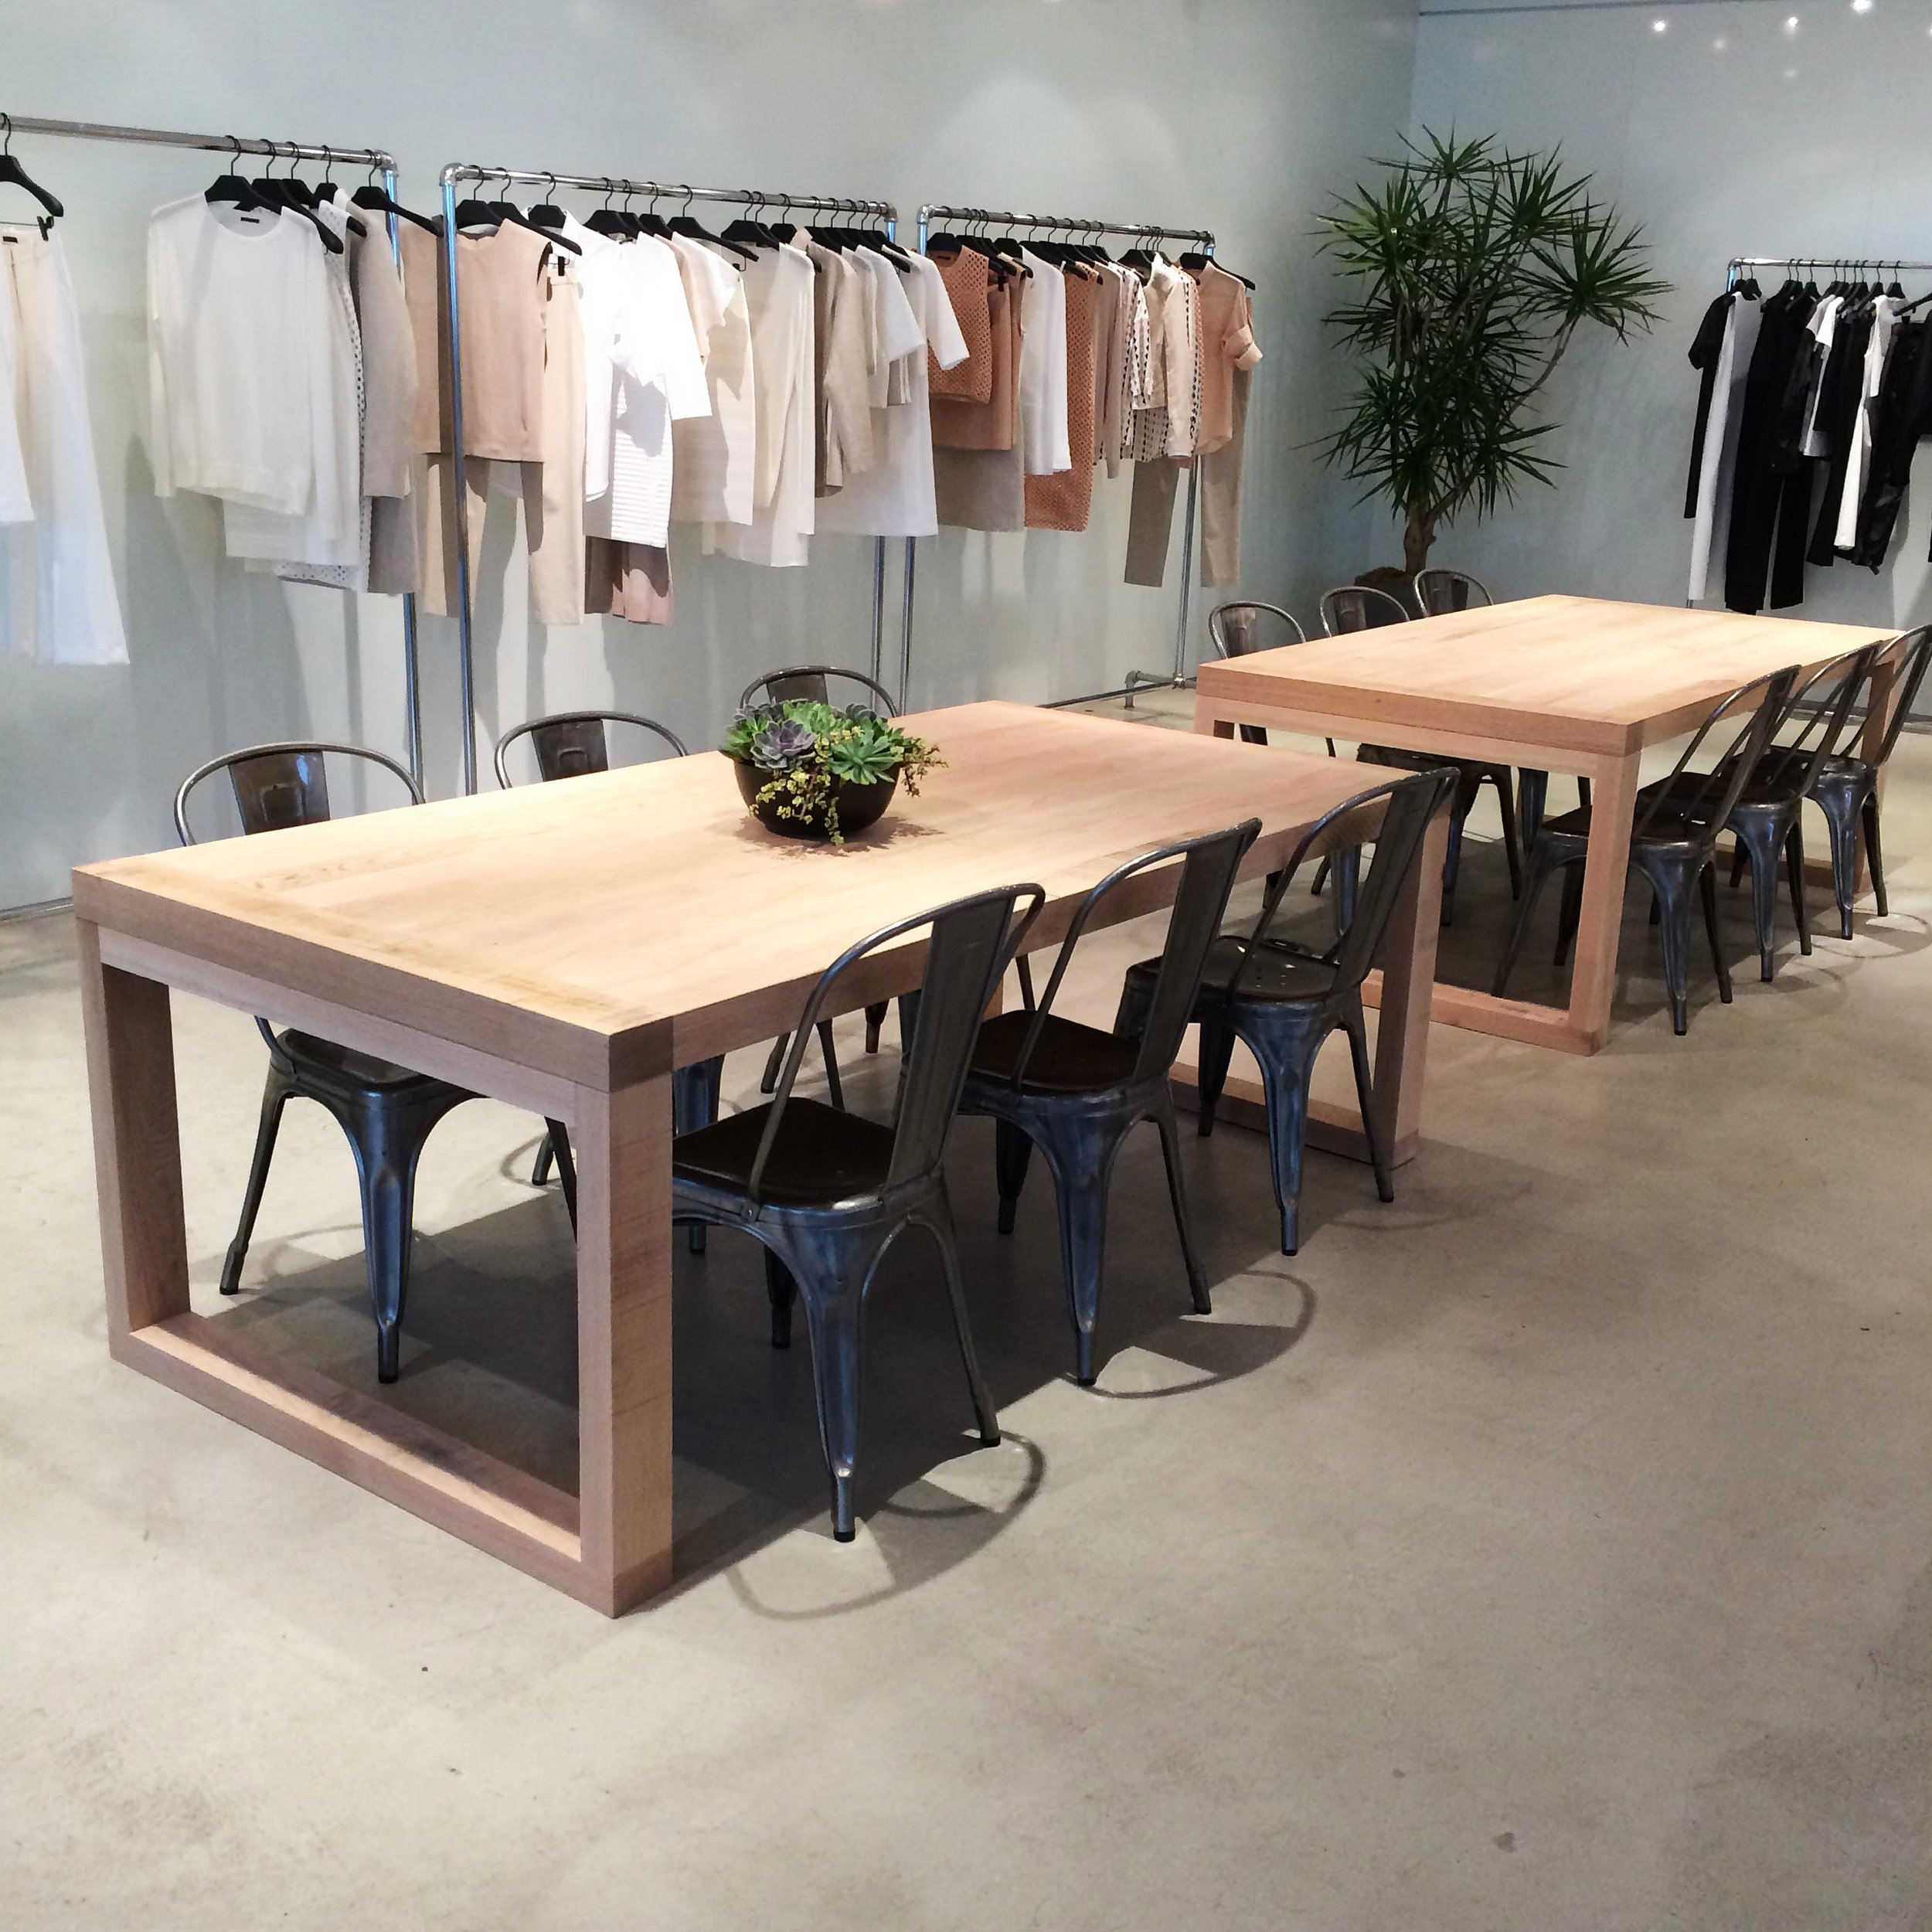 THEORY MEATPACKING STORE